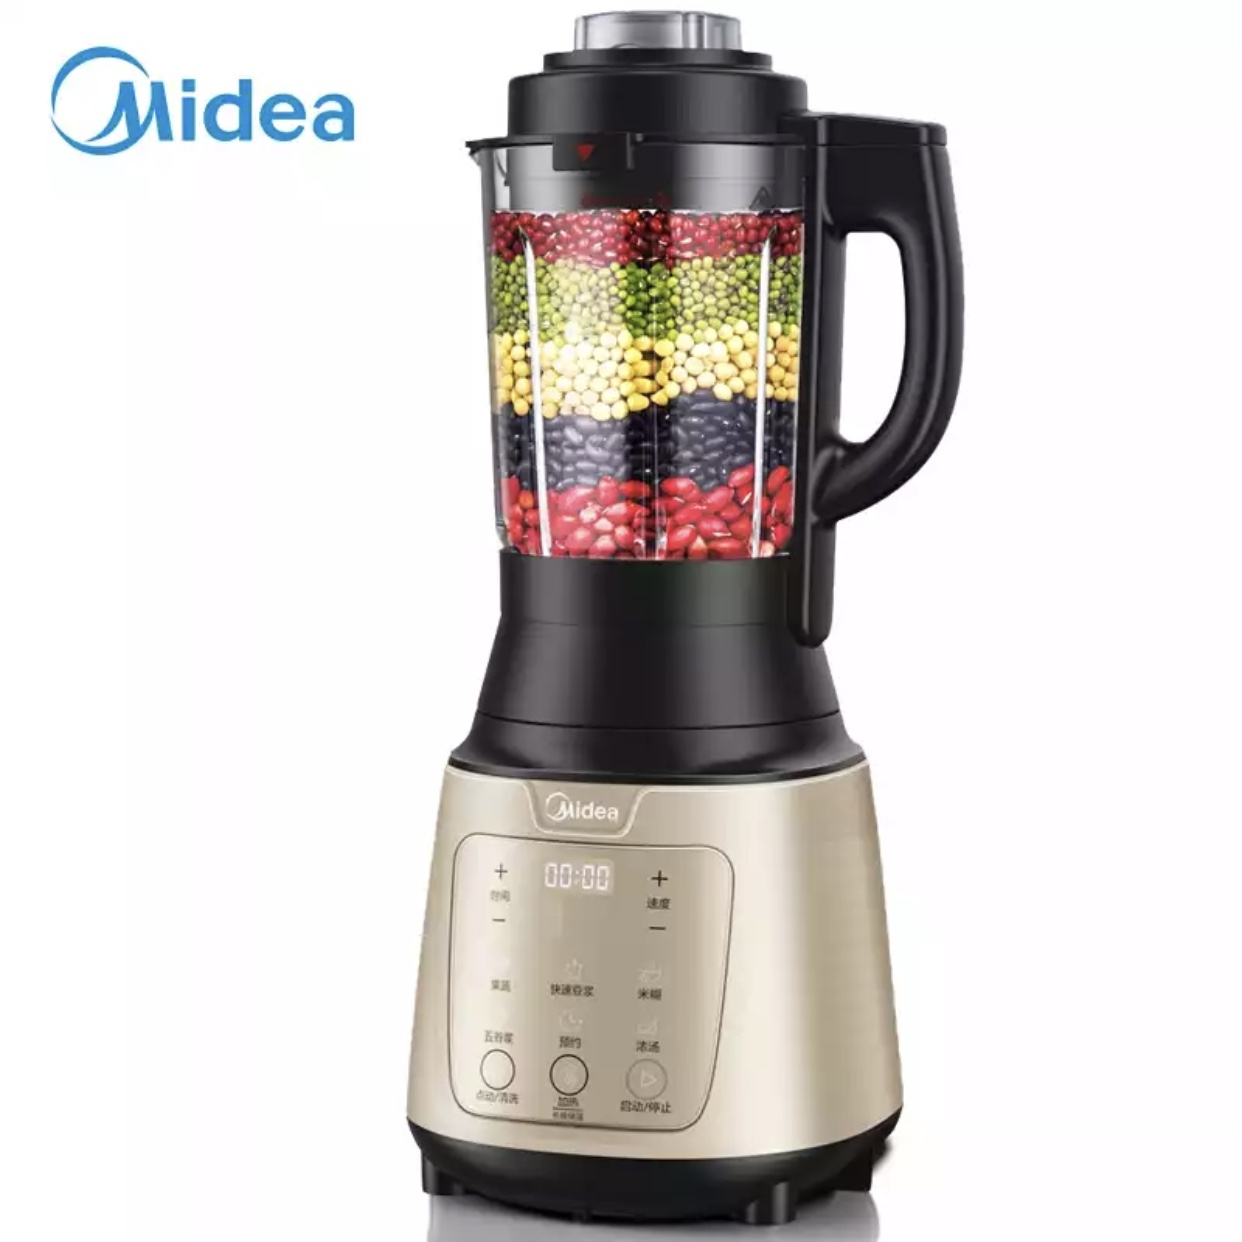 Midea wall breaker new household multi-function juicing and cooking soybean milk machine auxiliary food Baye Dao pb80easy215